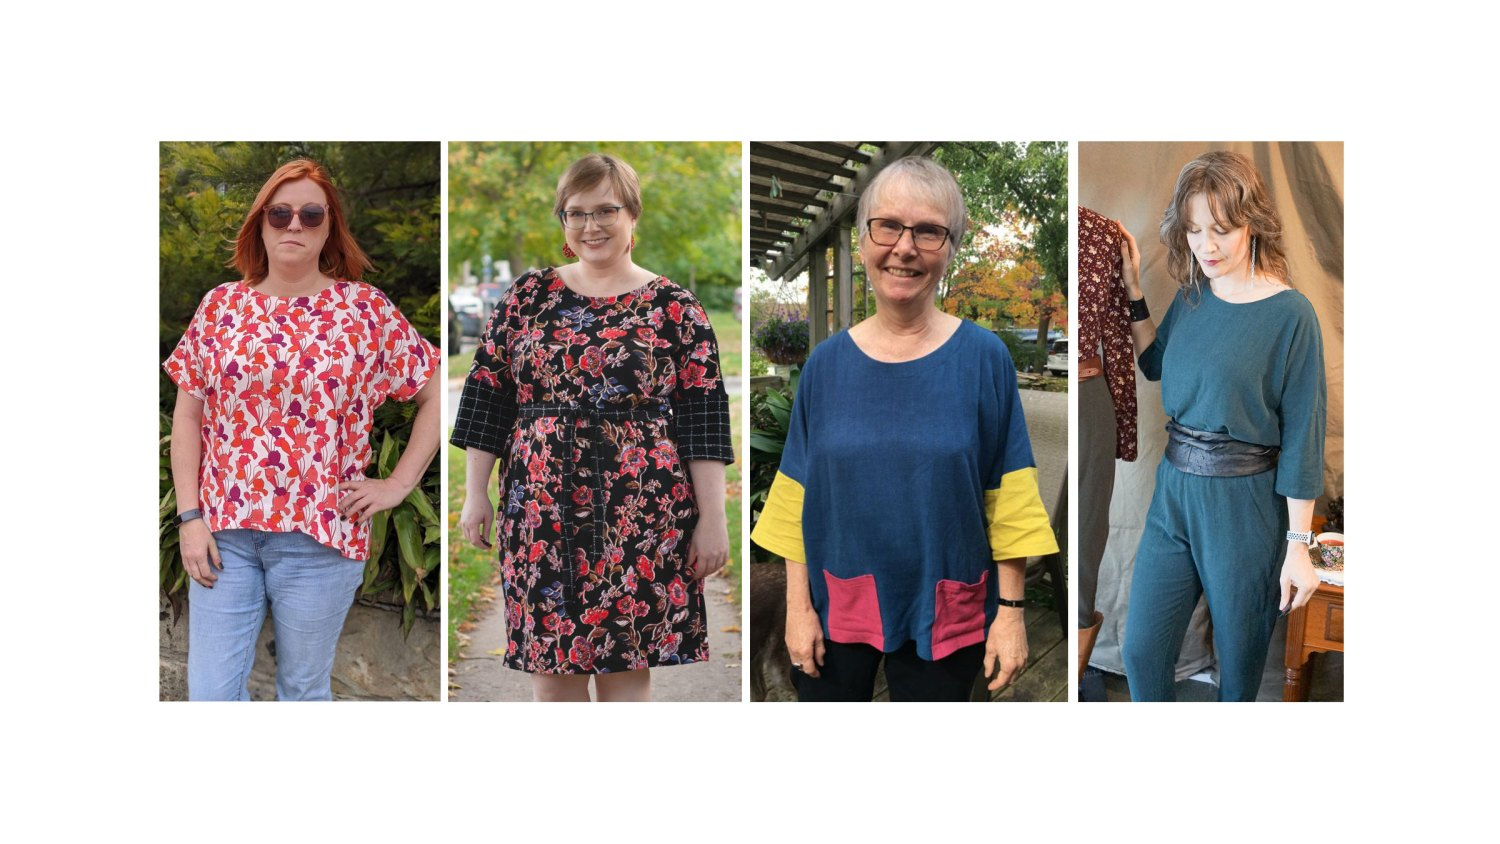 4 women wearing the Wiksten Shift pattern